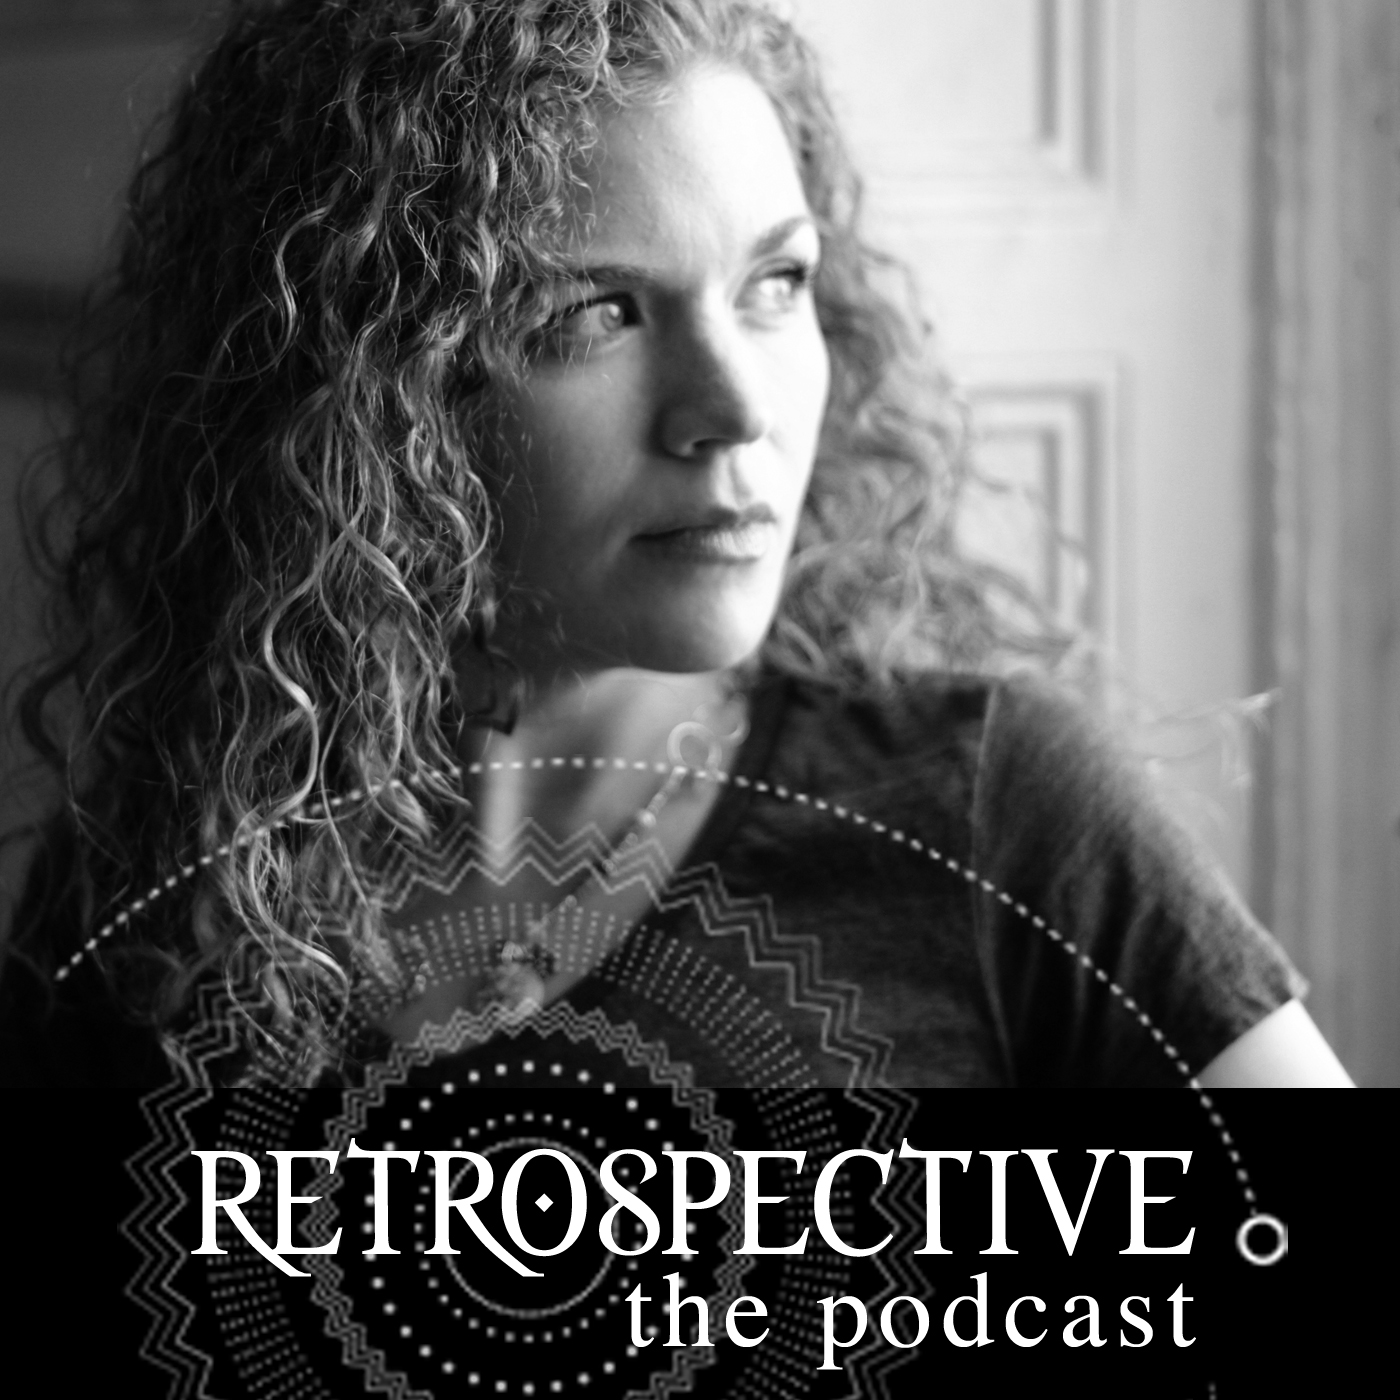 Retrospective: The Podcast